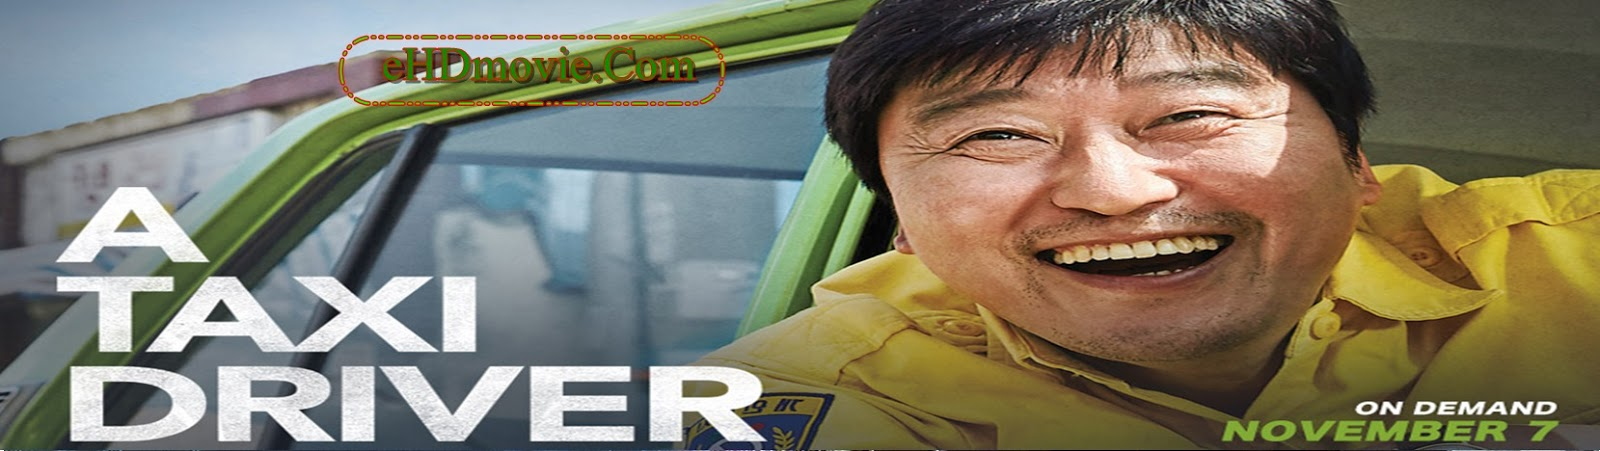 A Taxi Driver 2017 Full Movie Korean 720p - 480p ORG BRRip 500MB - 1GB ESubs Free Download